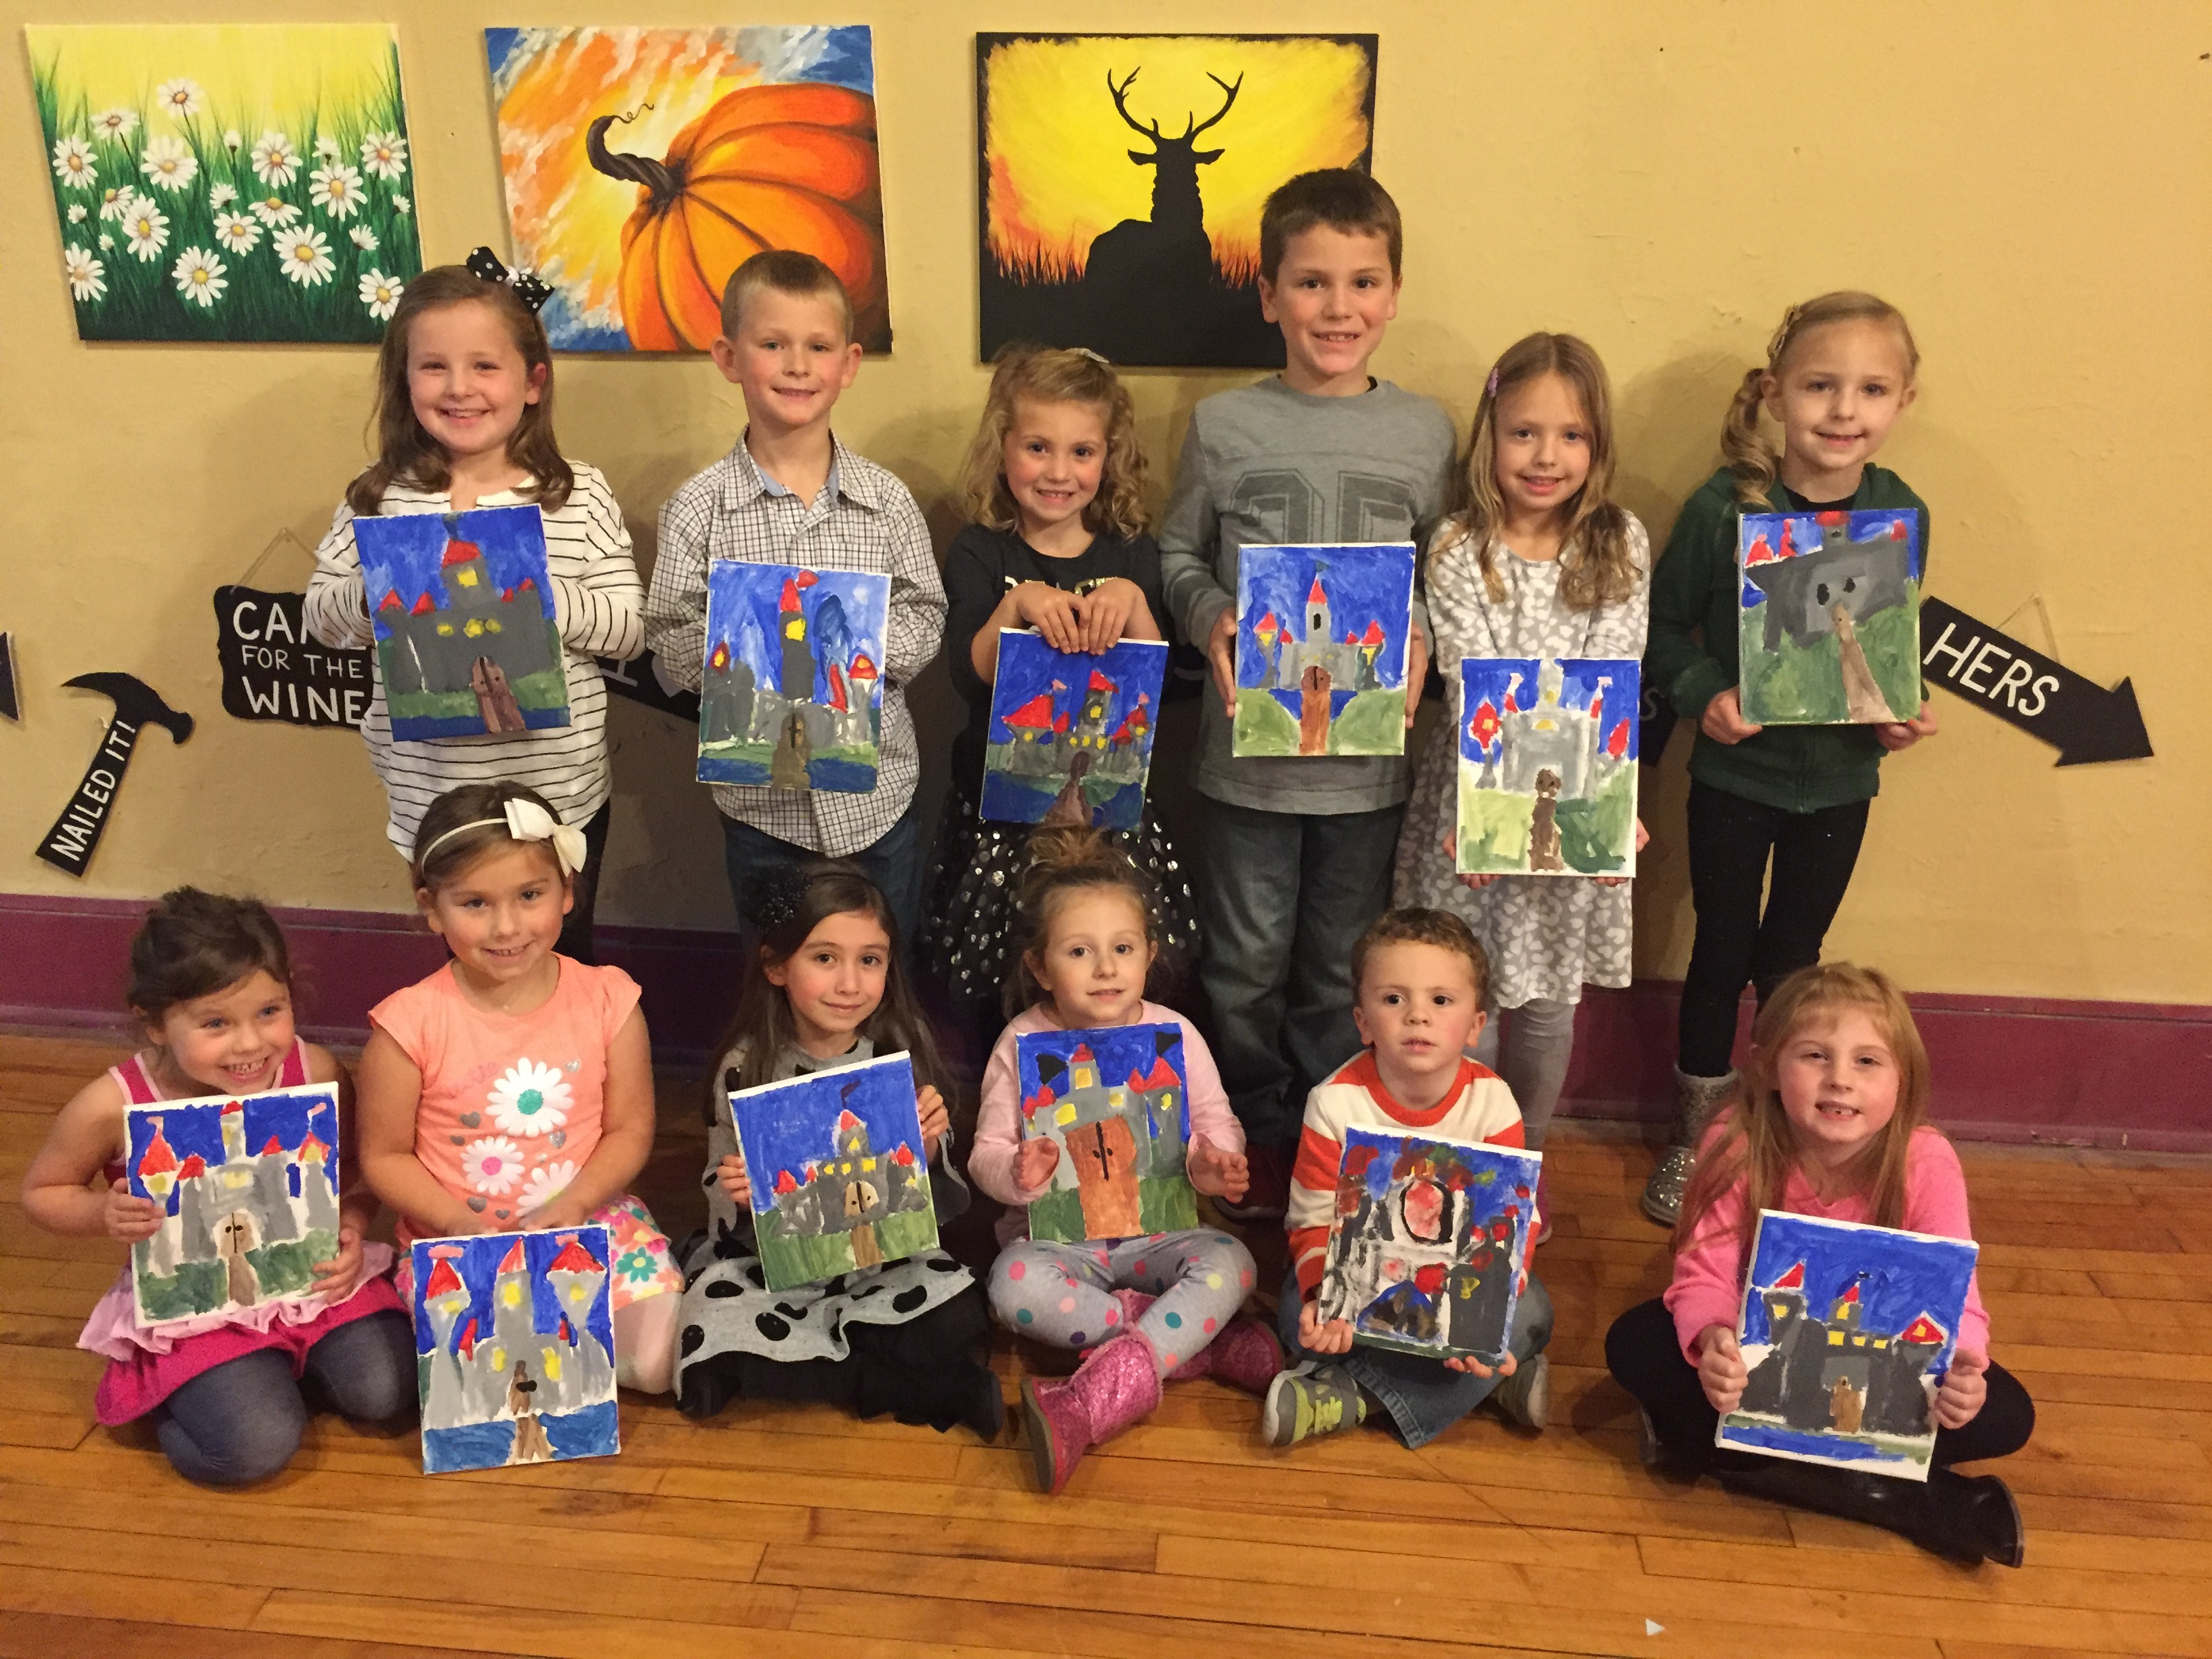 Graces party guests painted Castles! 11/8/15